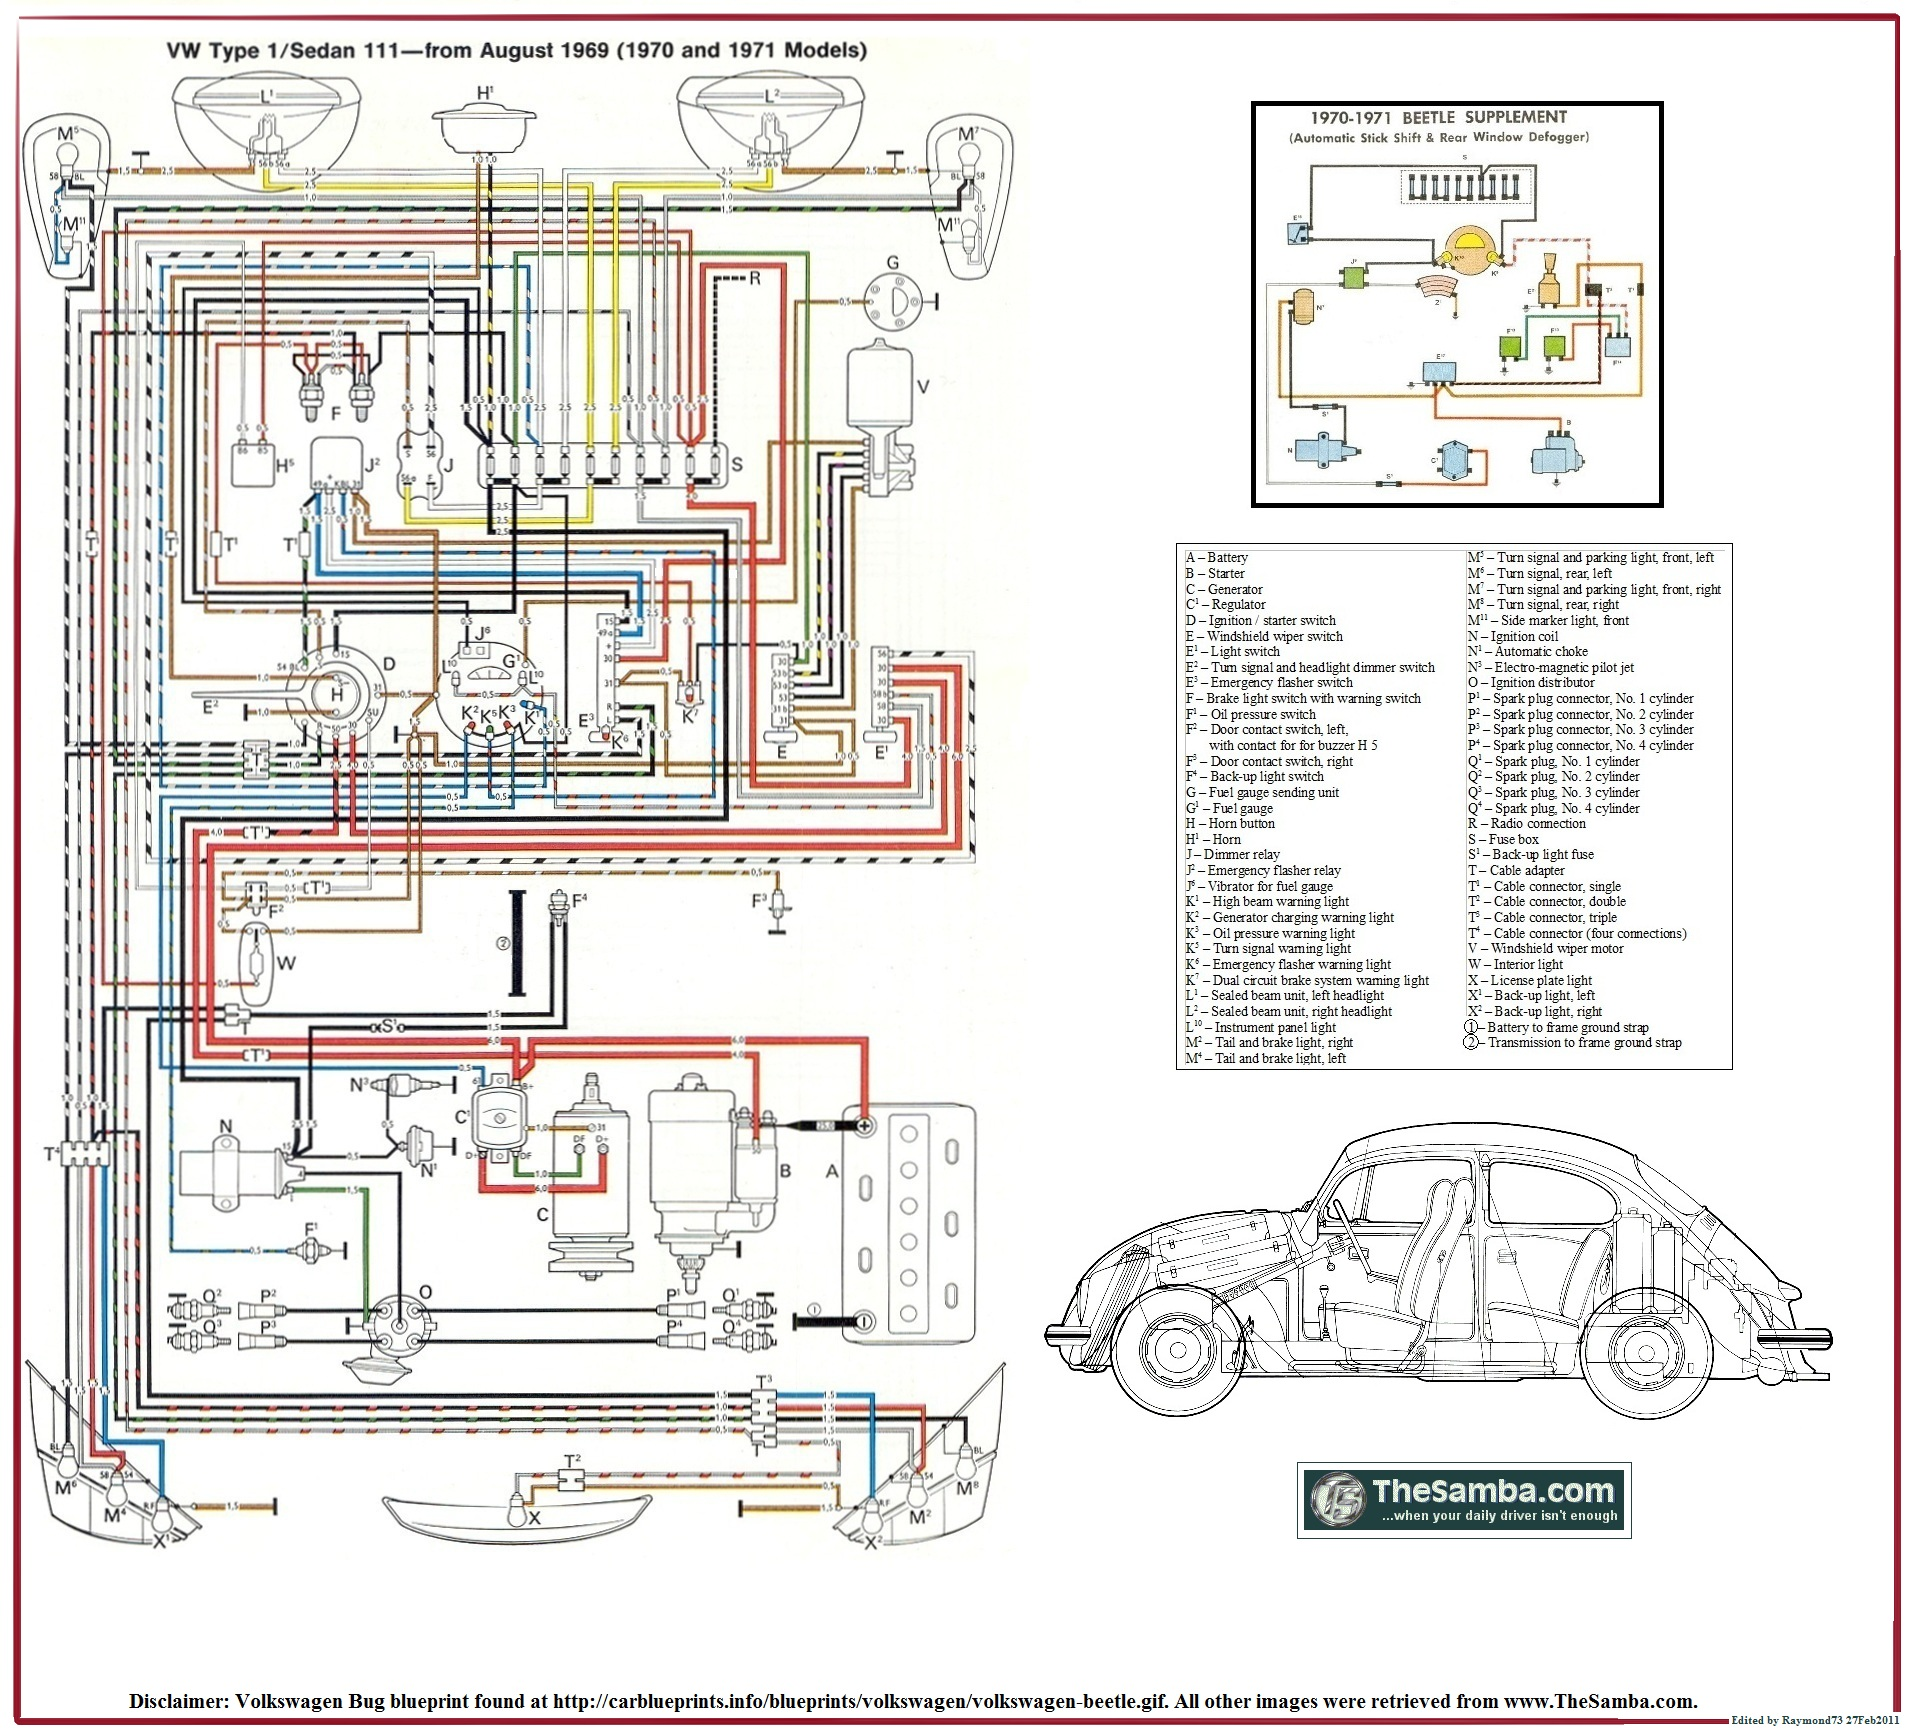 ddec v wiring diagram with Wiringt1 on DDEC IV EGR Engine Harness also Wiringt1 furthermore Detroit Ecm Wiring Diagram also Detroit 60 Sensor Locations also Chinese Atv 110 Wiring Diagram P 10430.